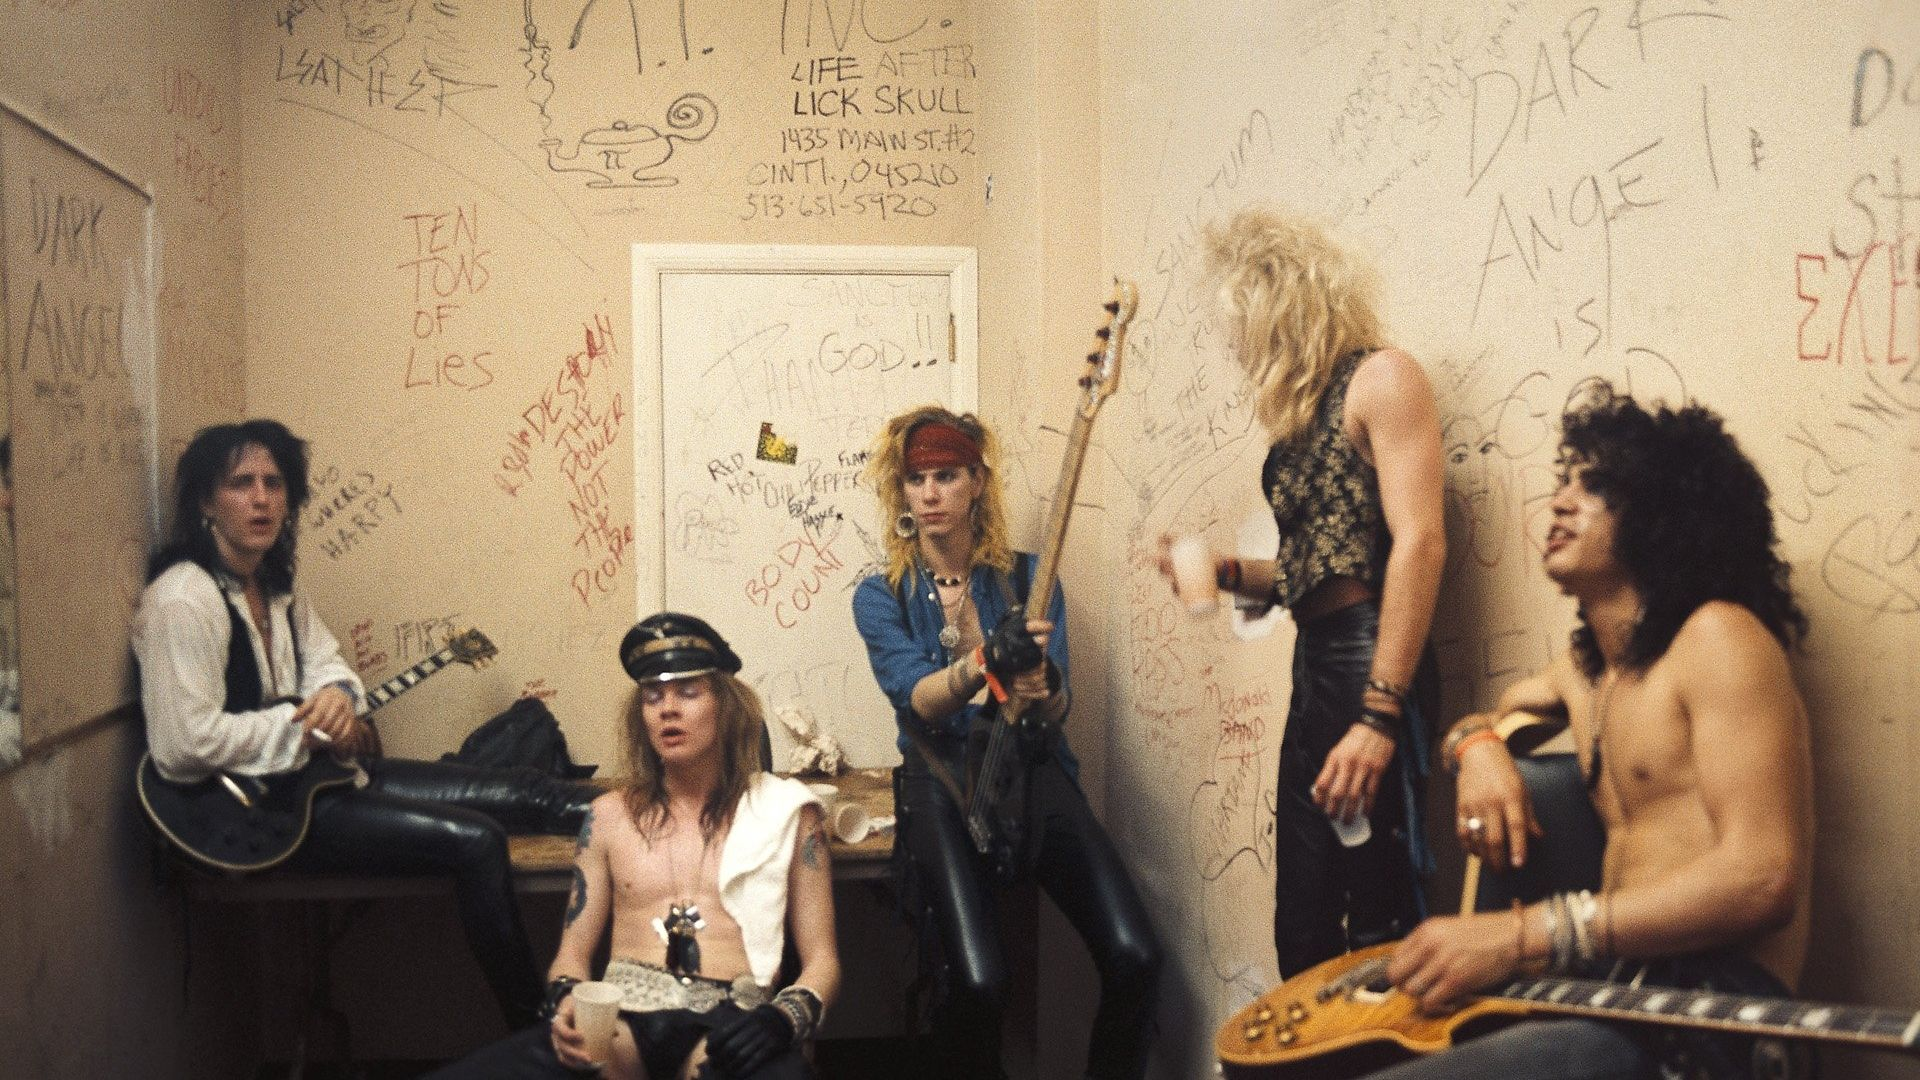 From left to right, Izzy Stradlin, Axl Rose, Duff McKagan, Steven Adler and Slash of Guns n' Roses pose for a portrait backstage at Fenders Ballroom, Long Beach, on March 31, 1986. They were opening up for Johnny Thunders that night and got signed to Geffen five days later - Credit: Getty Images